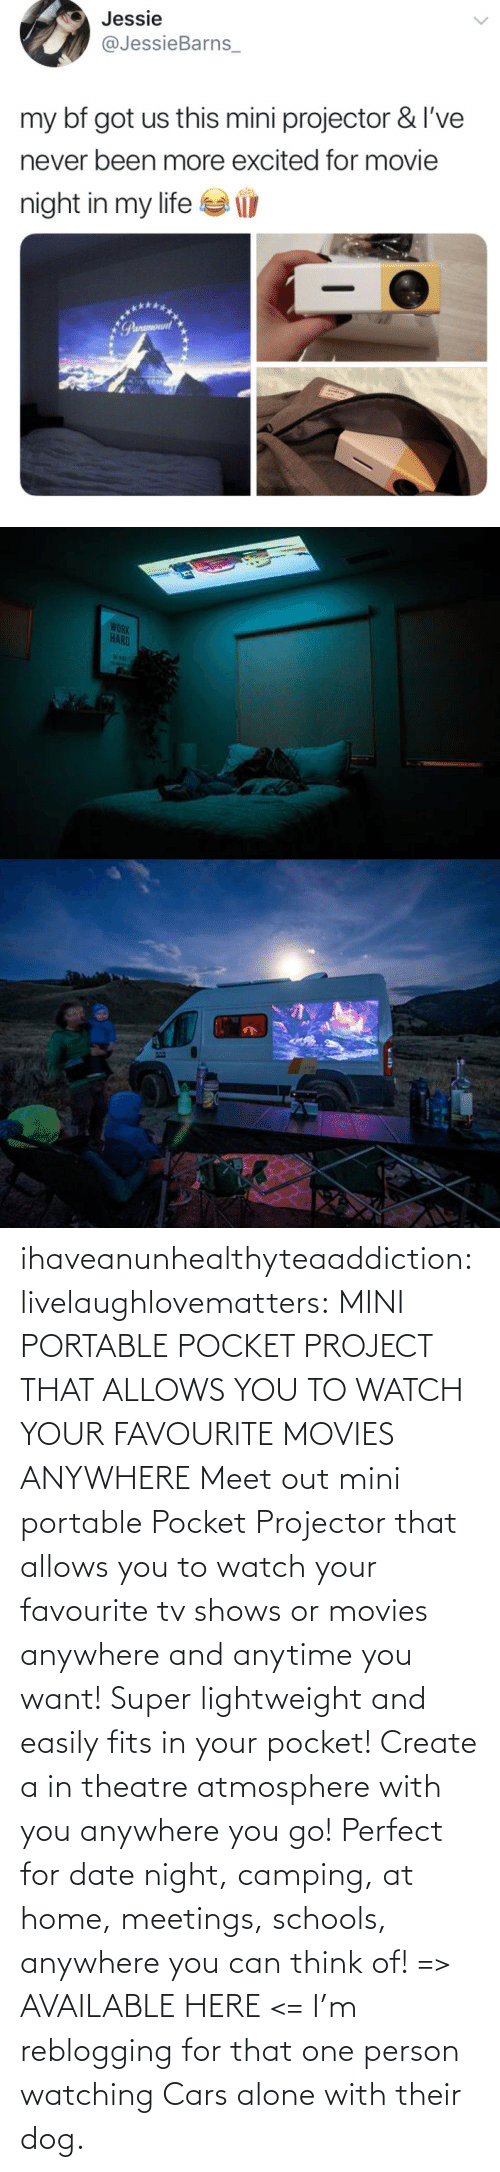 portable: ihaveanunhealthyteaaddiction:  livelaughlovematters: MINI PORTABLE POCKET PROJECT THAT ALLOWS YOU TO WATCH YOUR FAVOURITE MOVIES ANYWHERE Meet out mini portable Pocket Projector that allows you to watch your favourite tv shows or movies anywhere and anytime you want! Super lightweight and easily fits in your pocket! Create a in theatre atmosphere with you anywhere you go! Perfect for date night, camping, at home, meetings, schools, anywhere you can think of! => AVAILABLE HERE <=    I'm reblogging for that one person watching Cars alone with their dog.